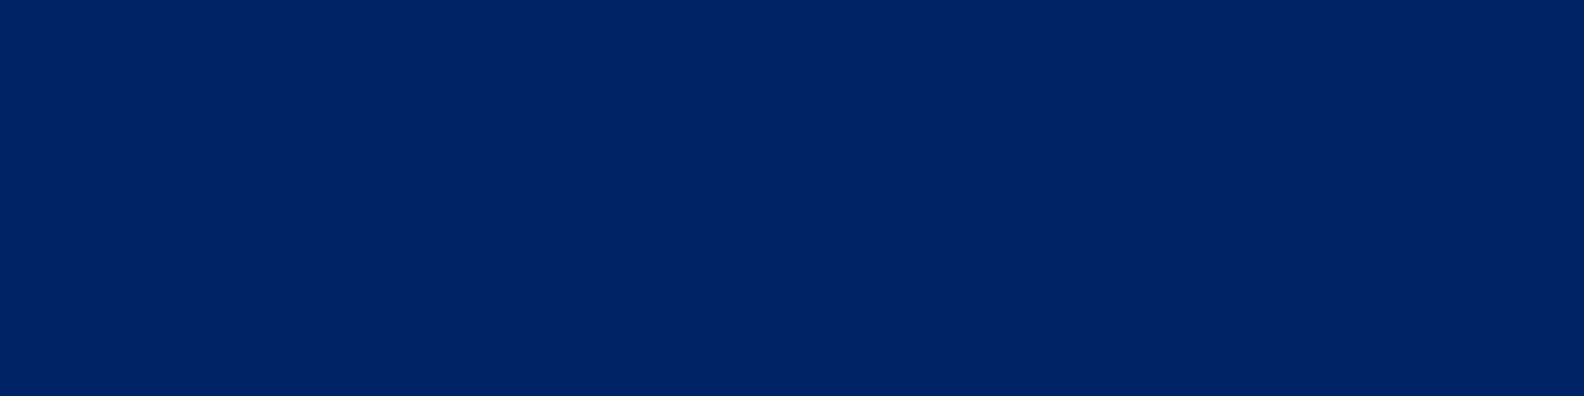 1584x396 Royal Blue Traditional Solid Color Background